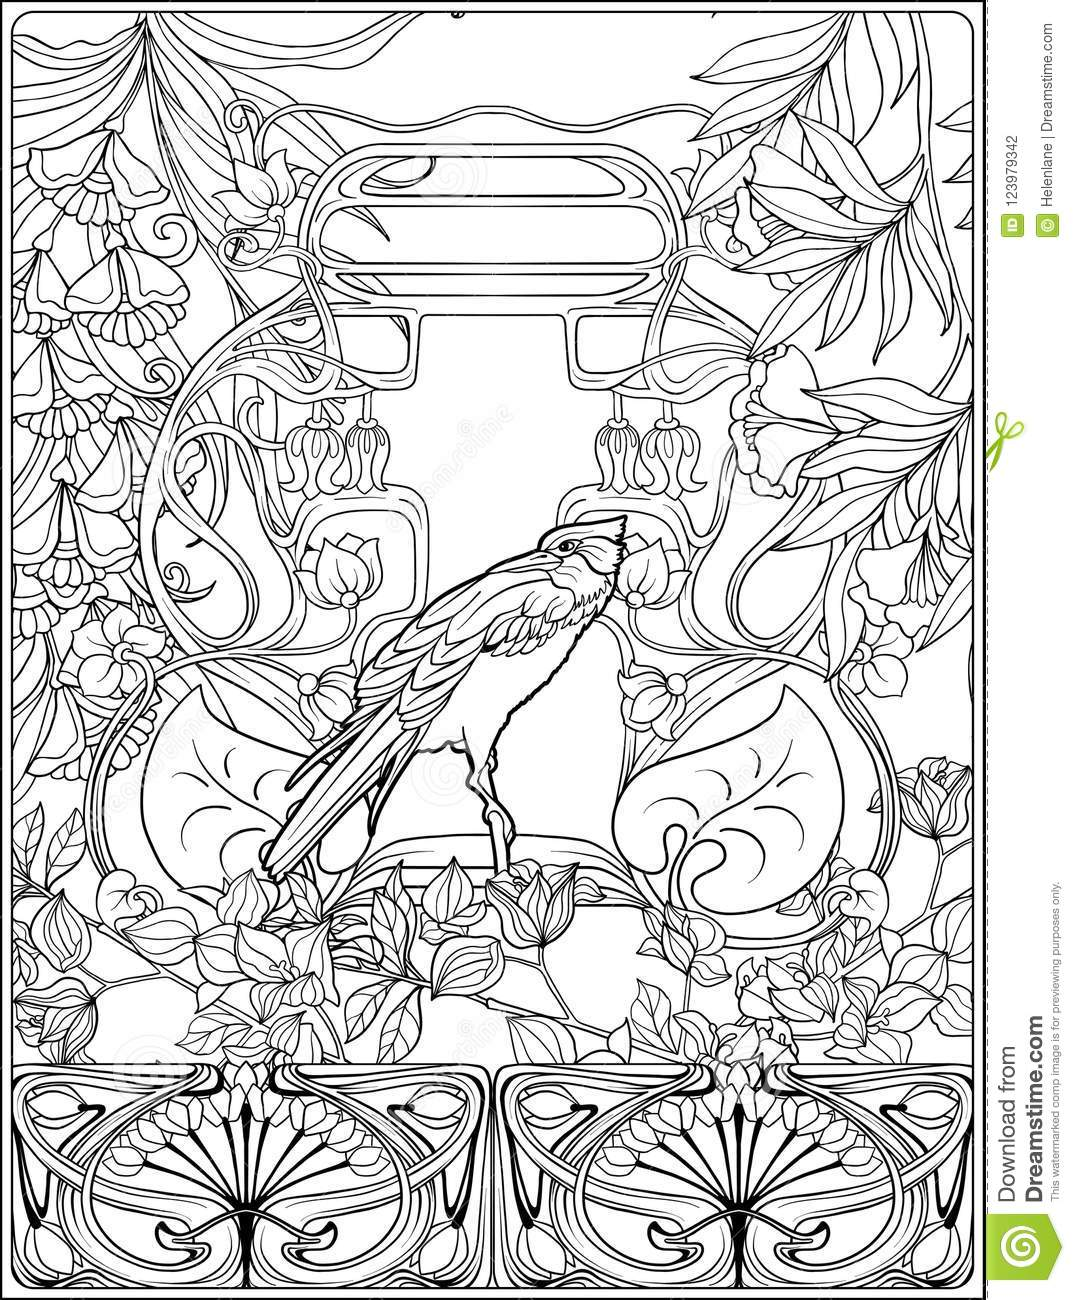 - Poster With Decorative Flowers And Carp Fish In Art Nouveau Style